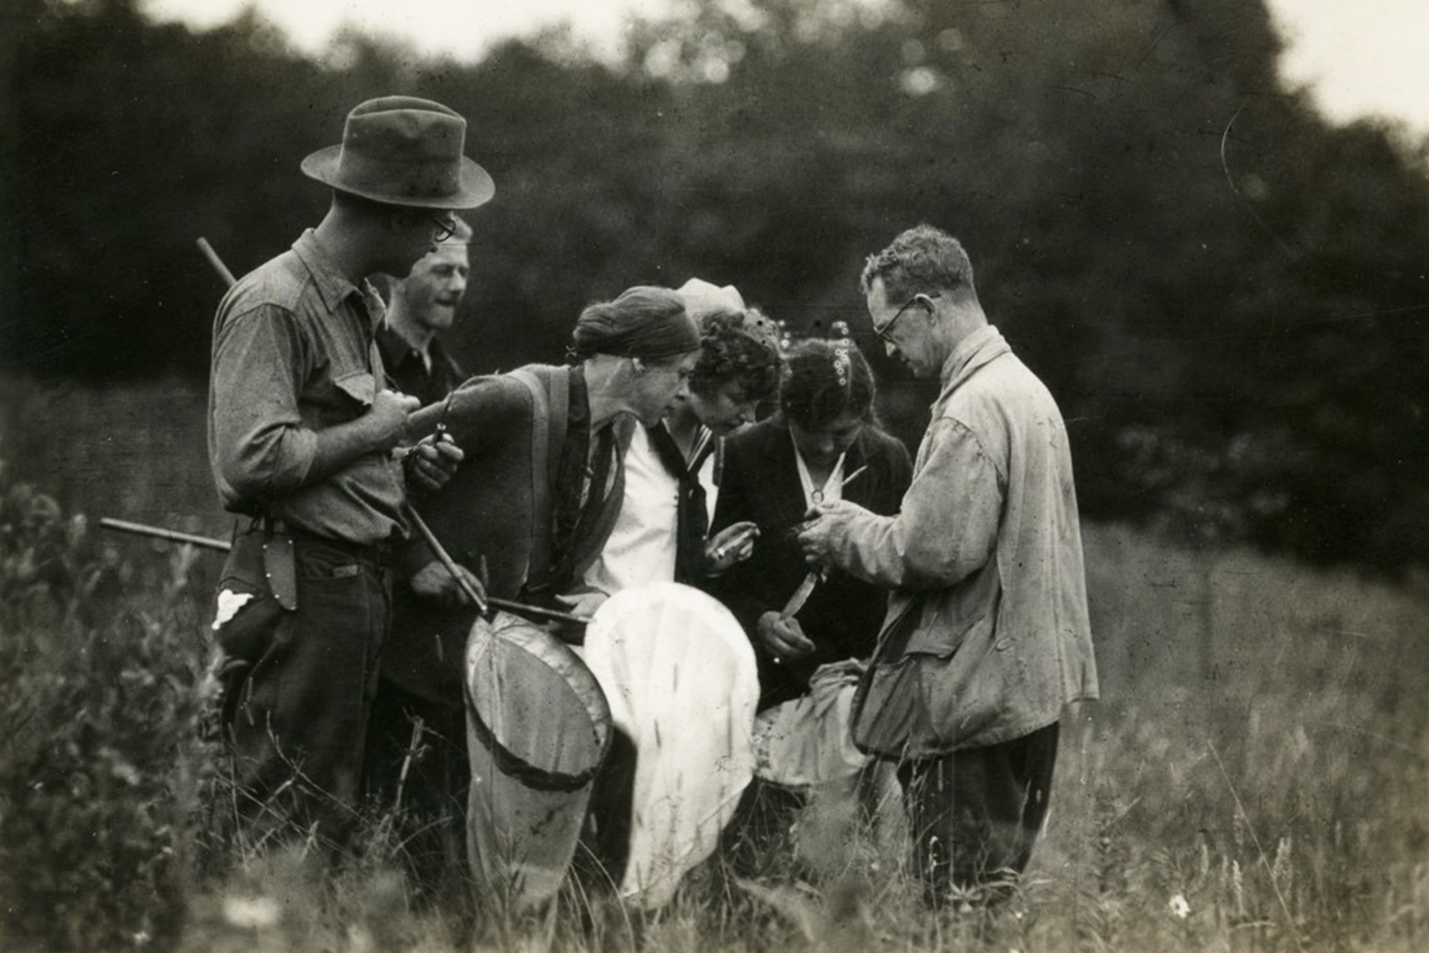 a black and white photo of a research team collecting samples with big nets in a field during the 1940s